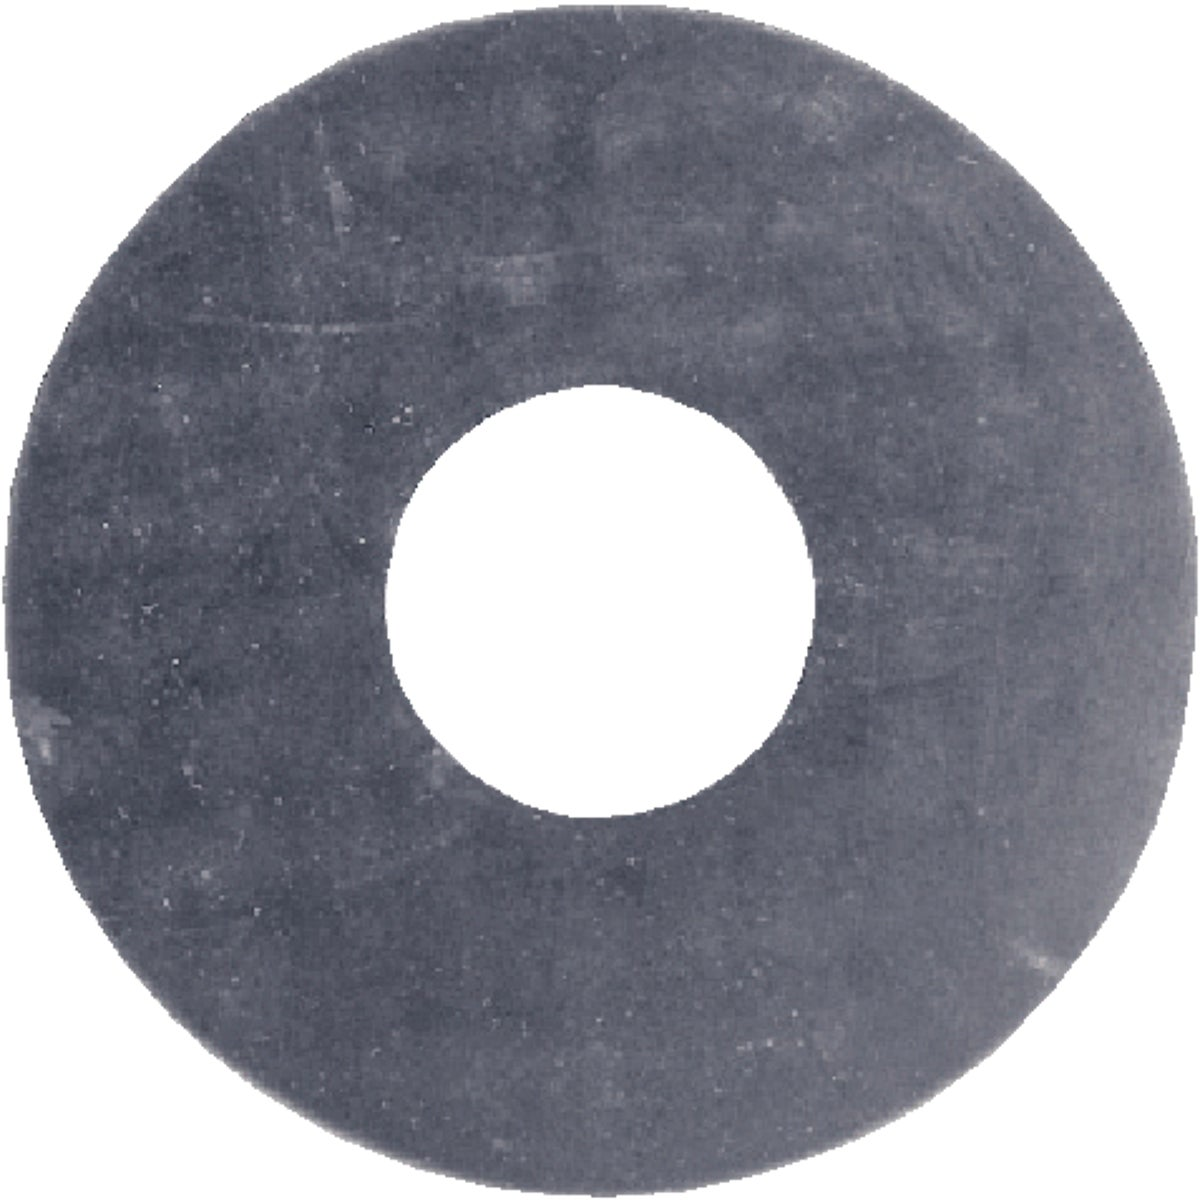 RUBBER BIBB GASKET - 35321B by Danco Perfect Match